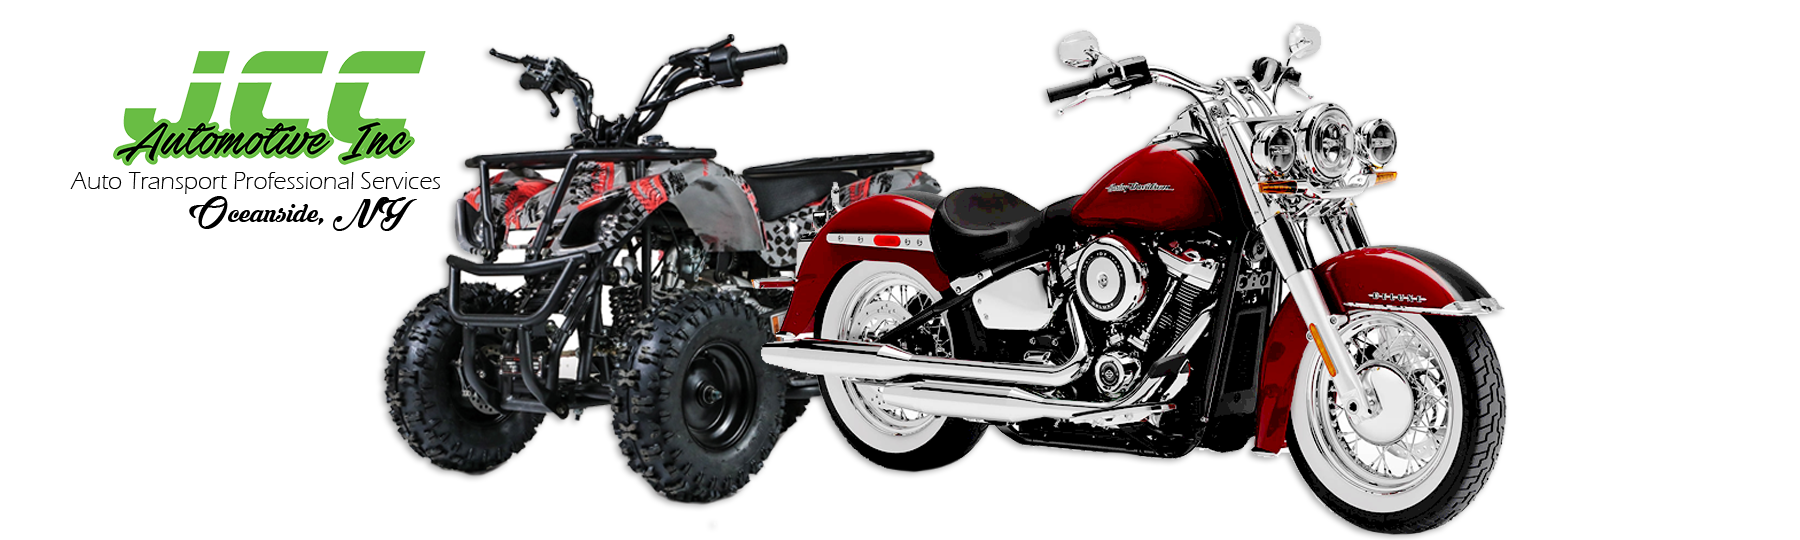 JCC Automotive Inc. | Motorcycle & ATV Transport Professional Services, 3 New Street, Oceanside, Long Island, NY, 11572 | PHONE: 516-287-4189, FAX: 516-599-8206